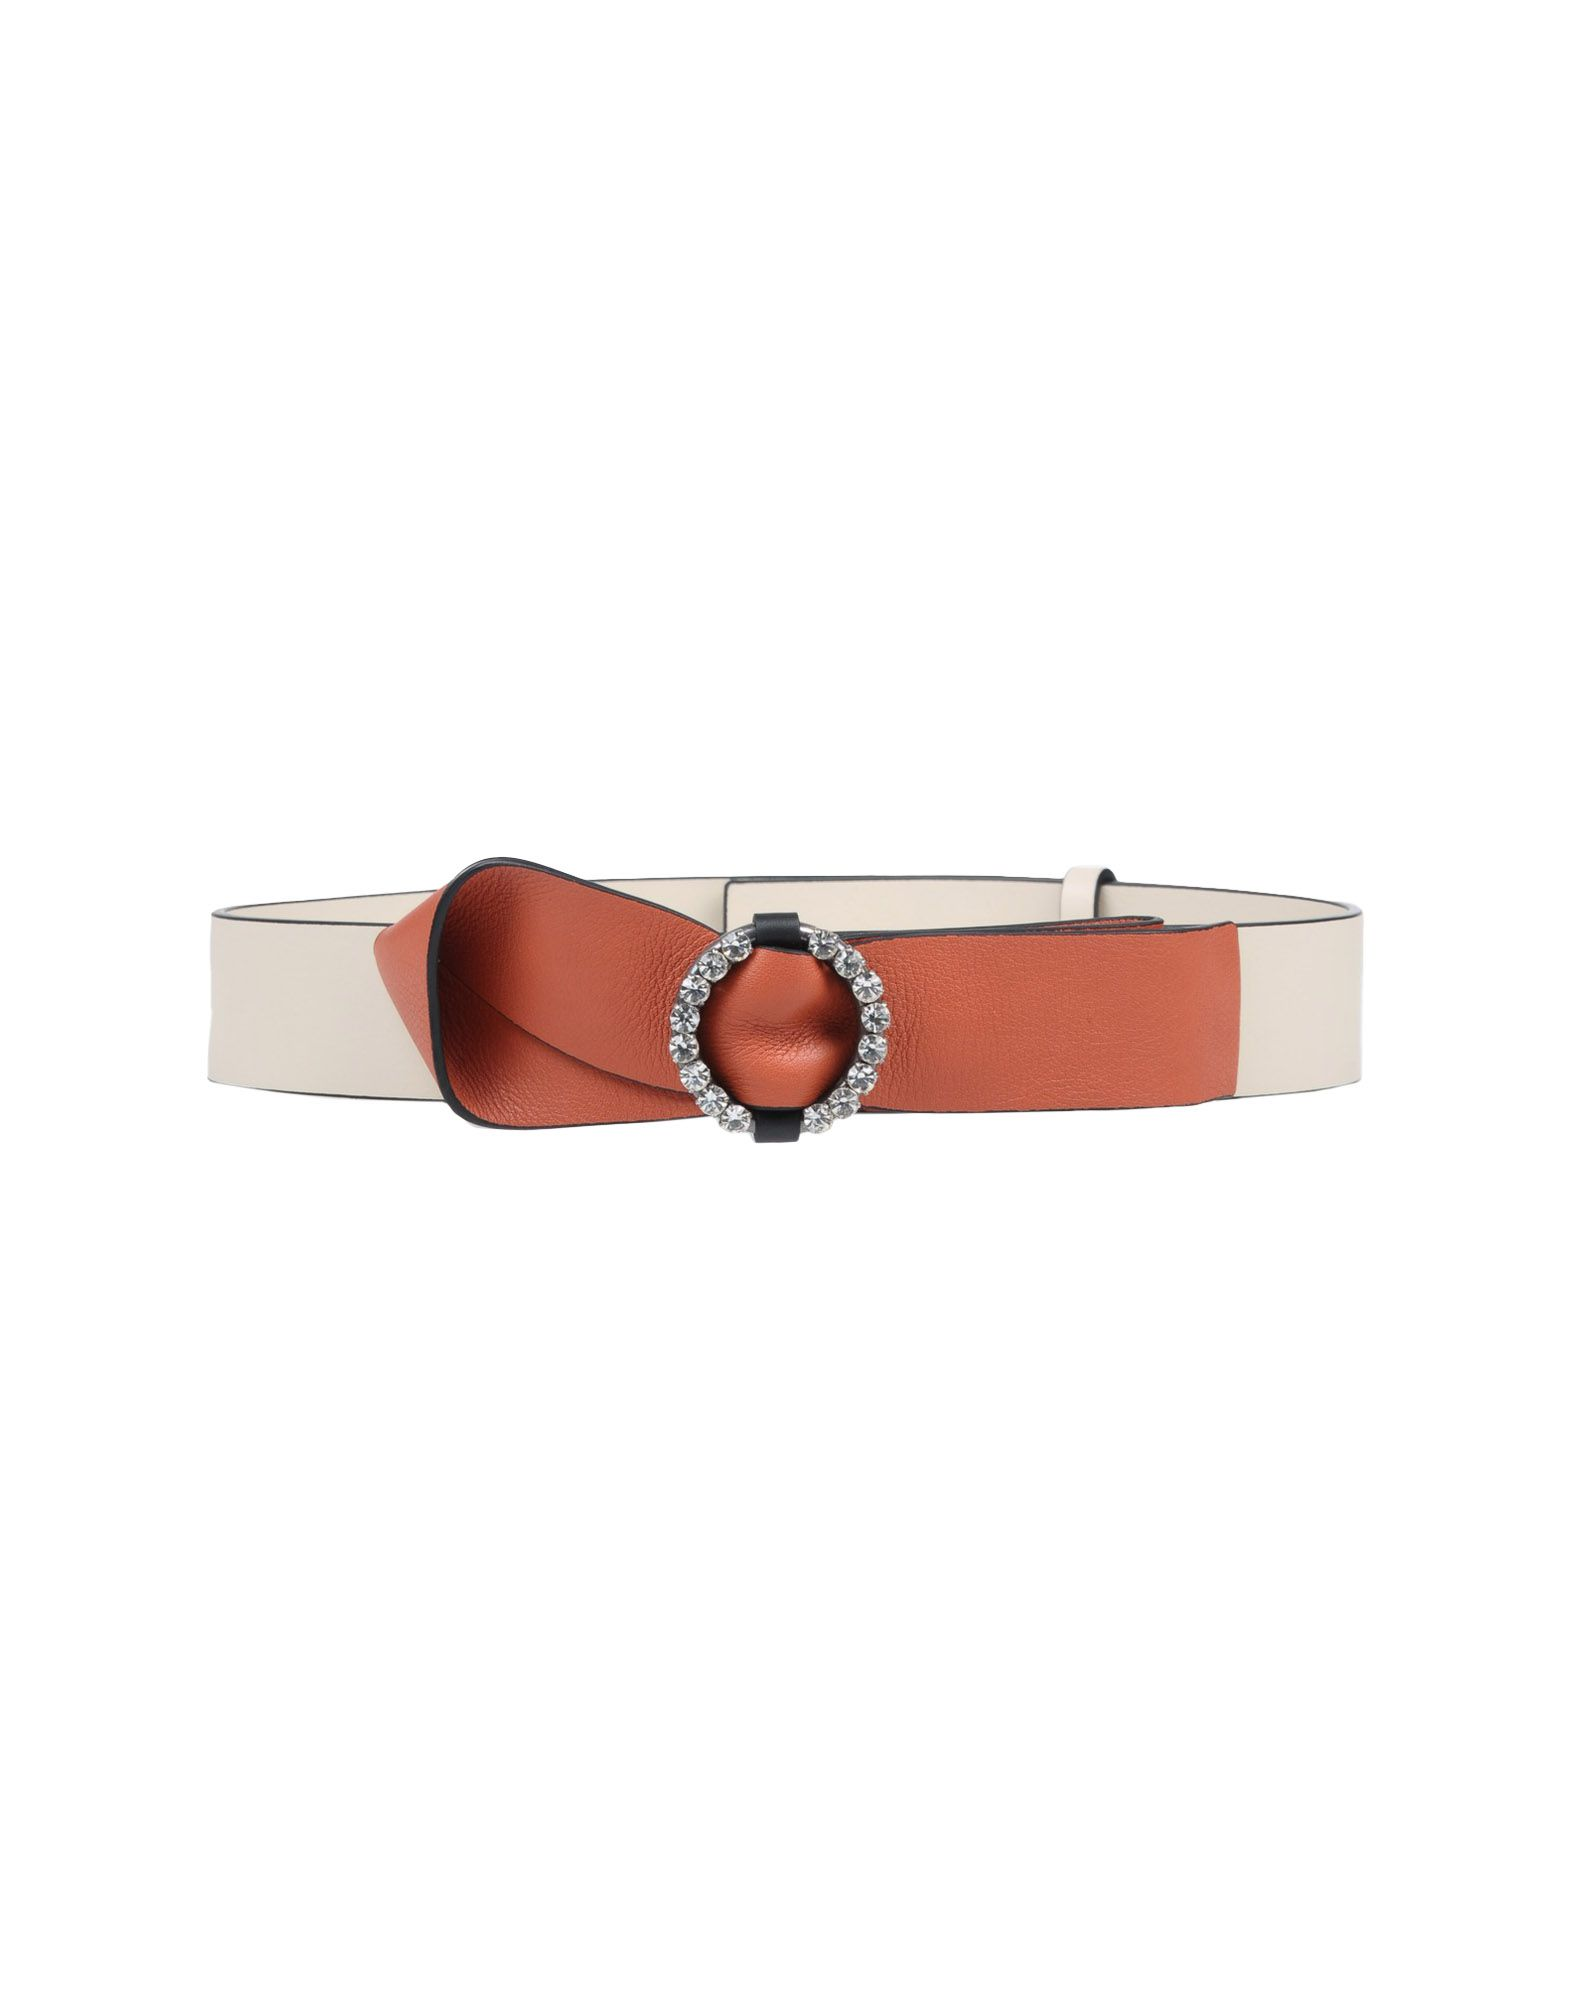 Small Leather Goods - Belts Genny NnanoCiBu